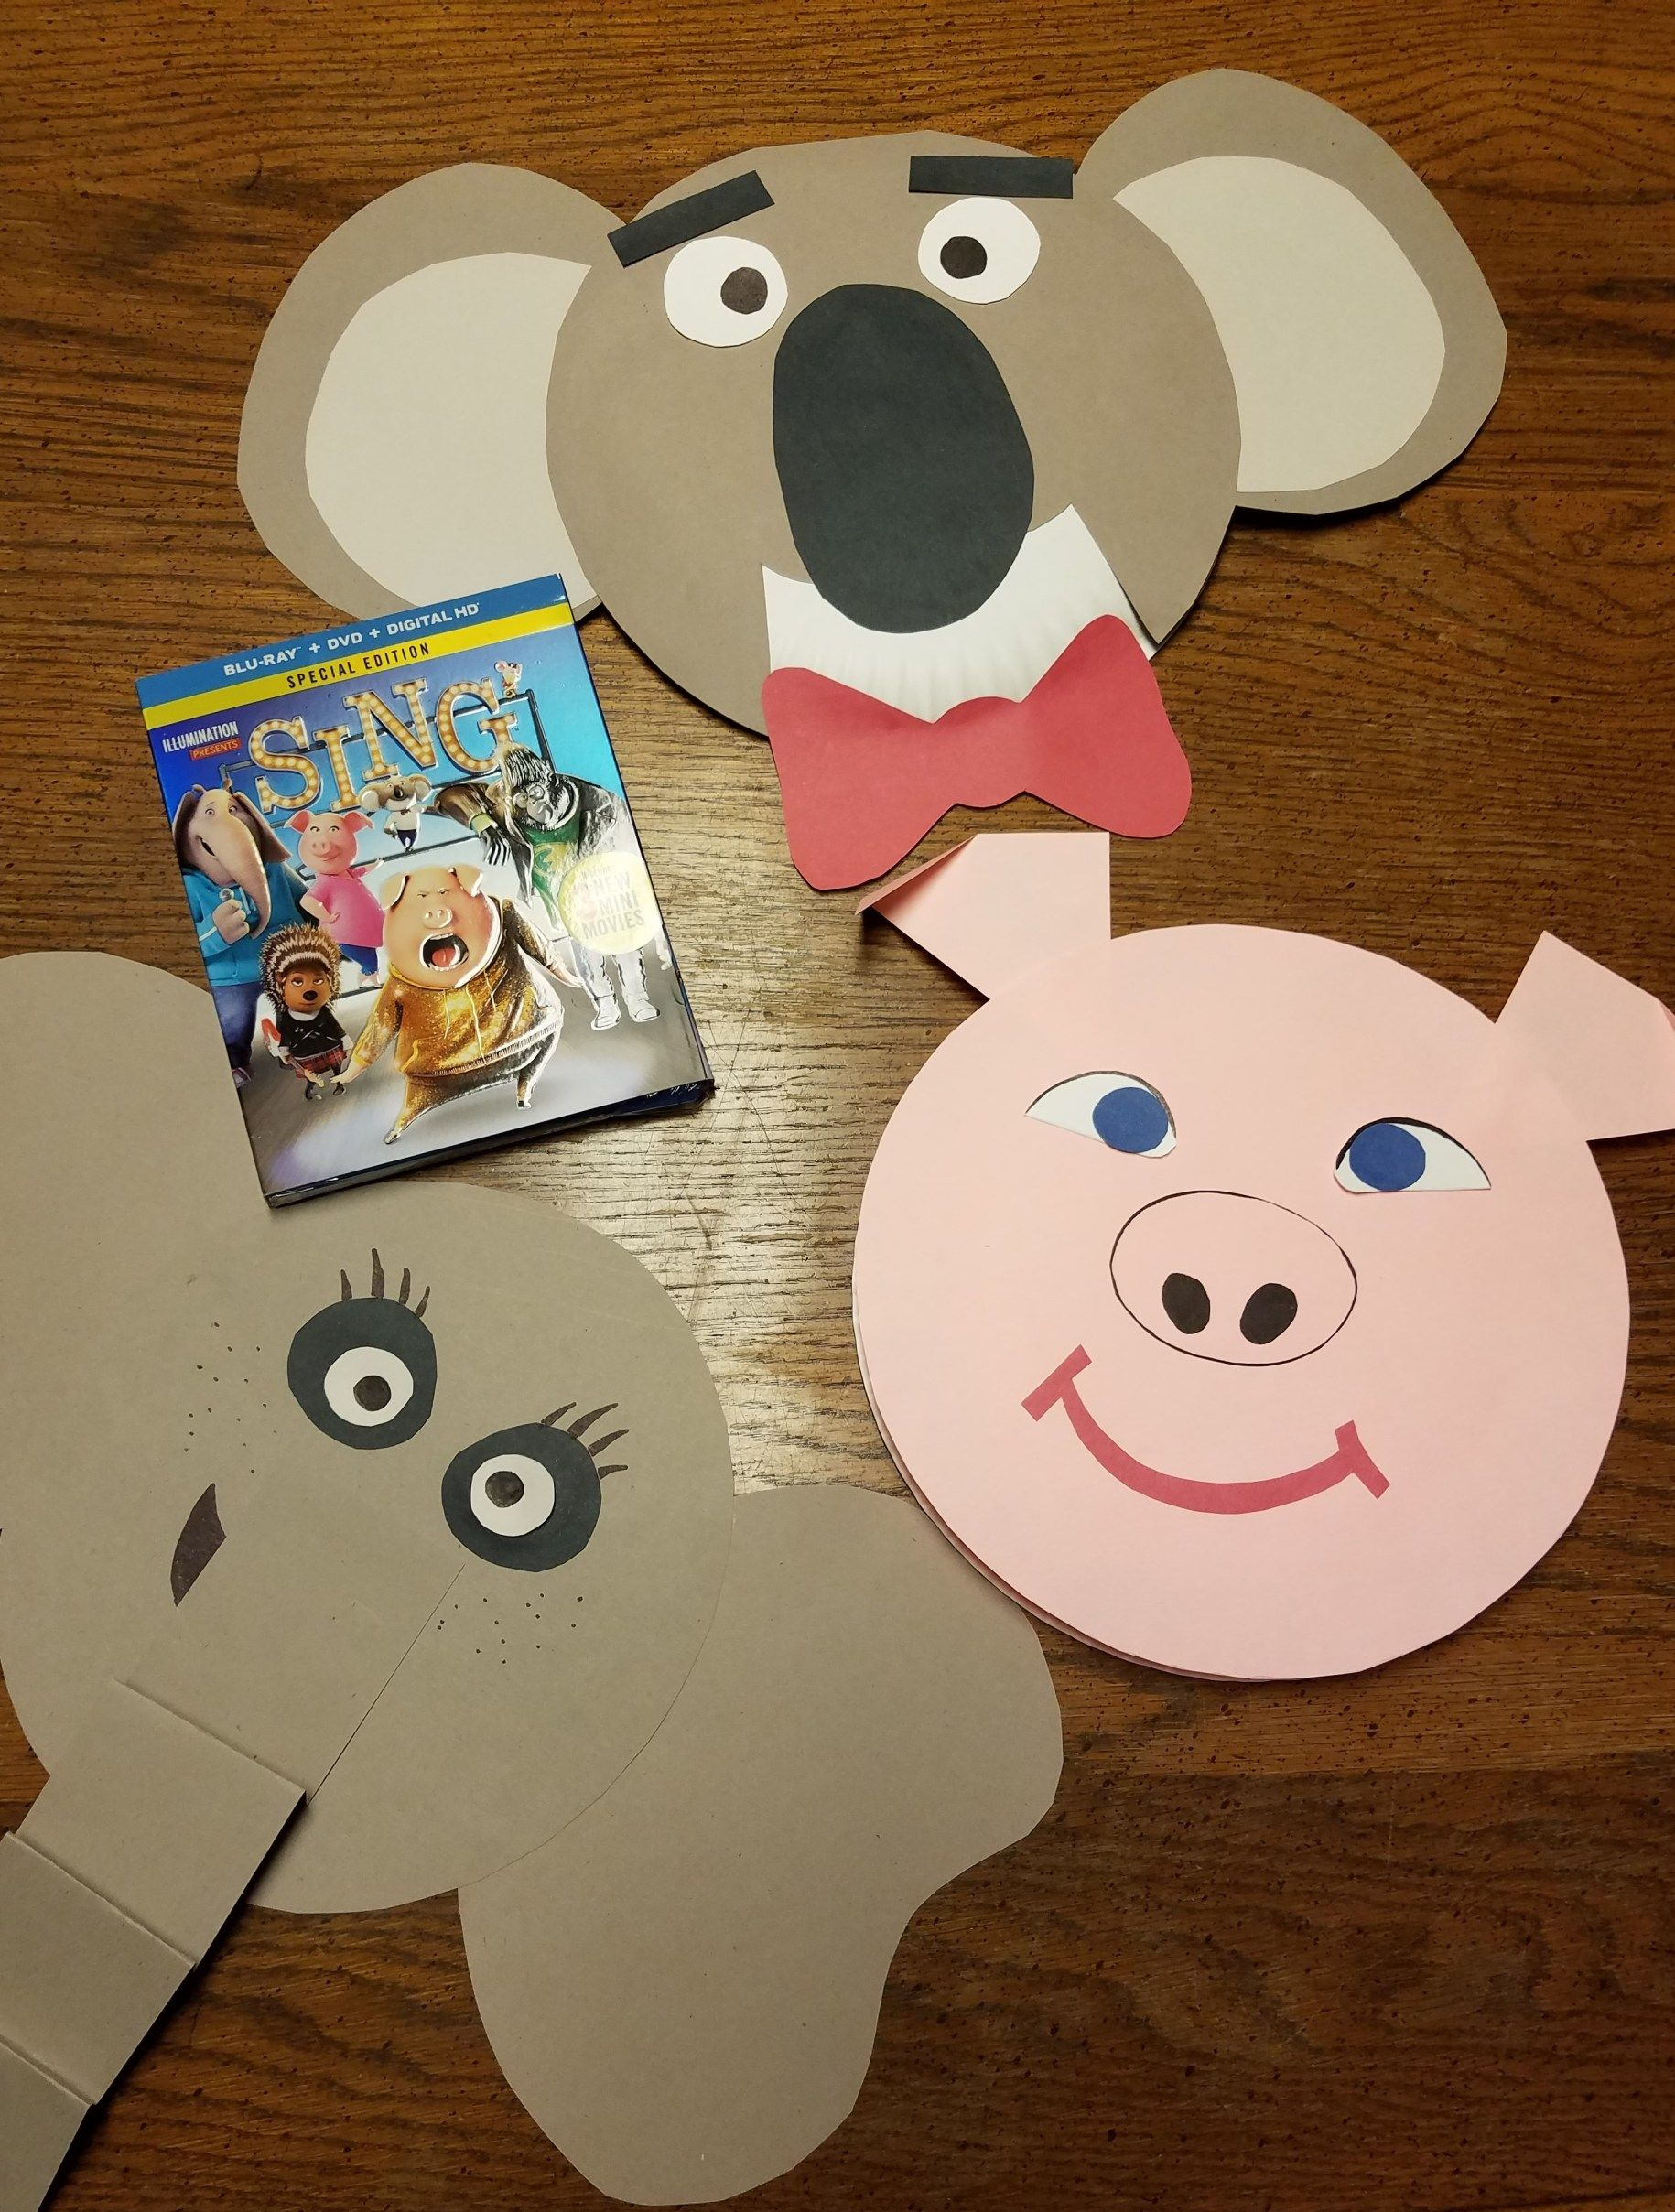 Design Your Own Paper Plate Masks for SING Family Movie Night & Design Your Own Paper Plate Masks for SING Family Movie Night | Sing ...